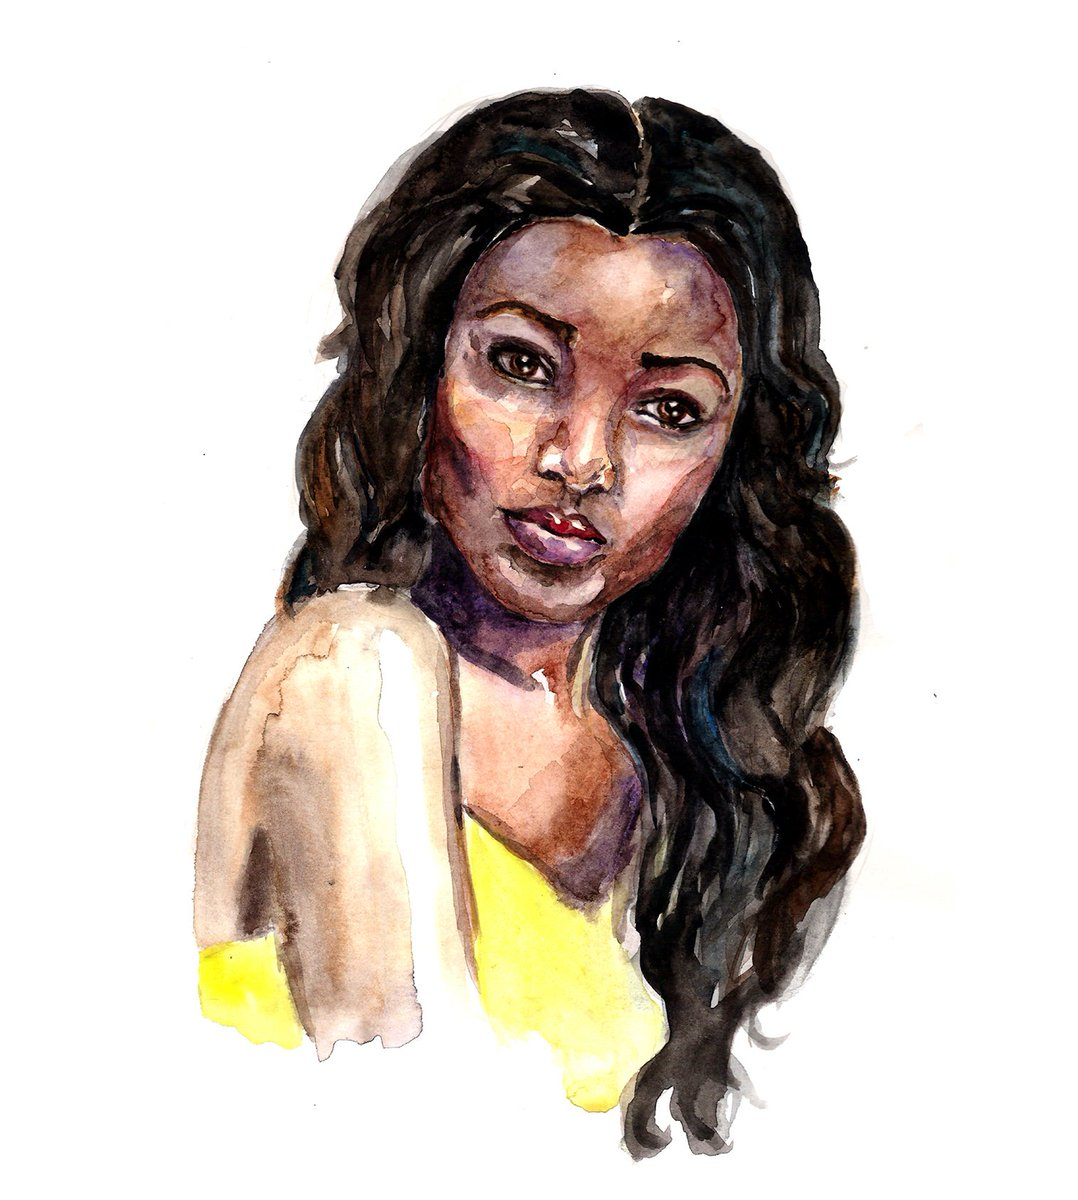 https://society6.com/product/ebony635057_print?sku=s6-7431583p4a1v45 … #print #african #american #watercolor #portrait #pretty #woman #girl #beauty #art #illustration #painting #findyourthing #prints #ethnic #black #ebony #products #naturalbeauty